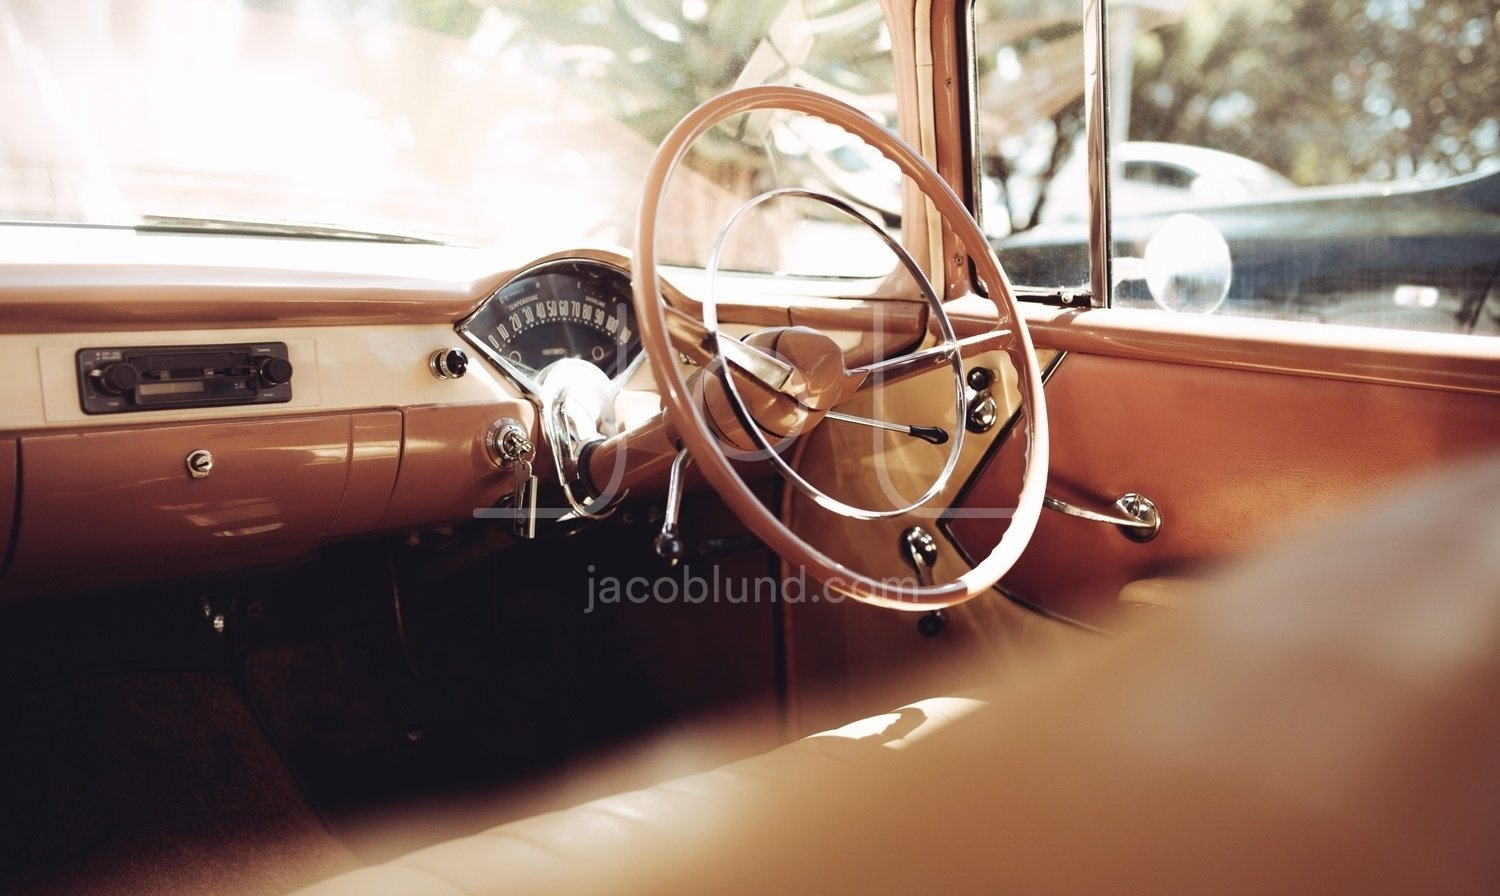 Dashboard Of A Classic Vintage Car Jacob Lund Photography Store Premium Stock Photo